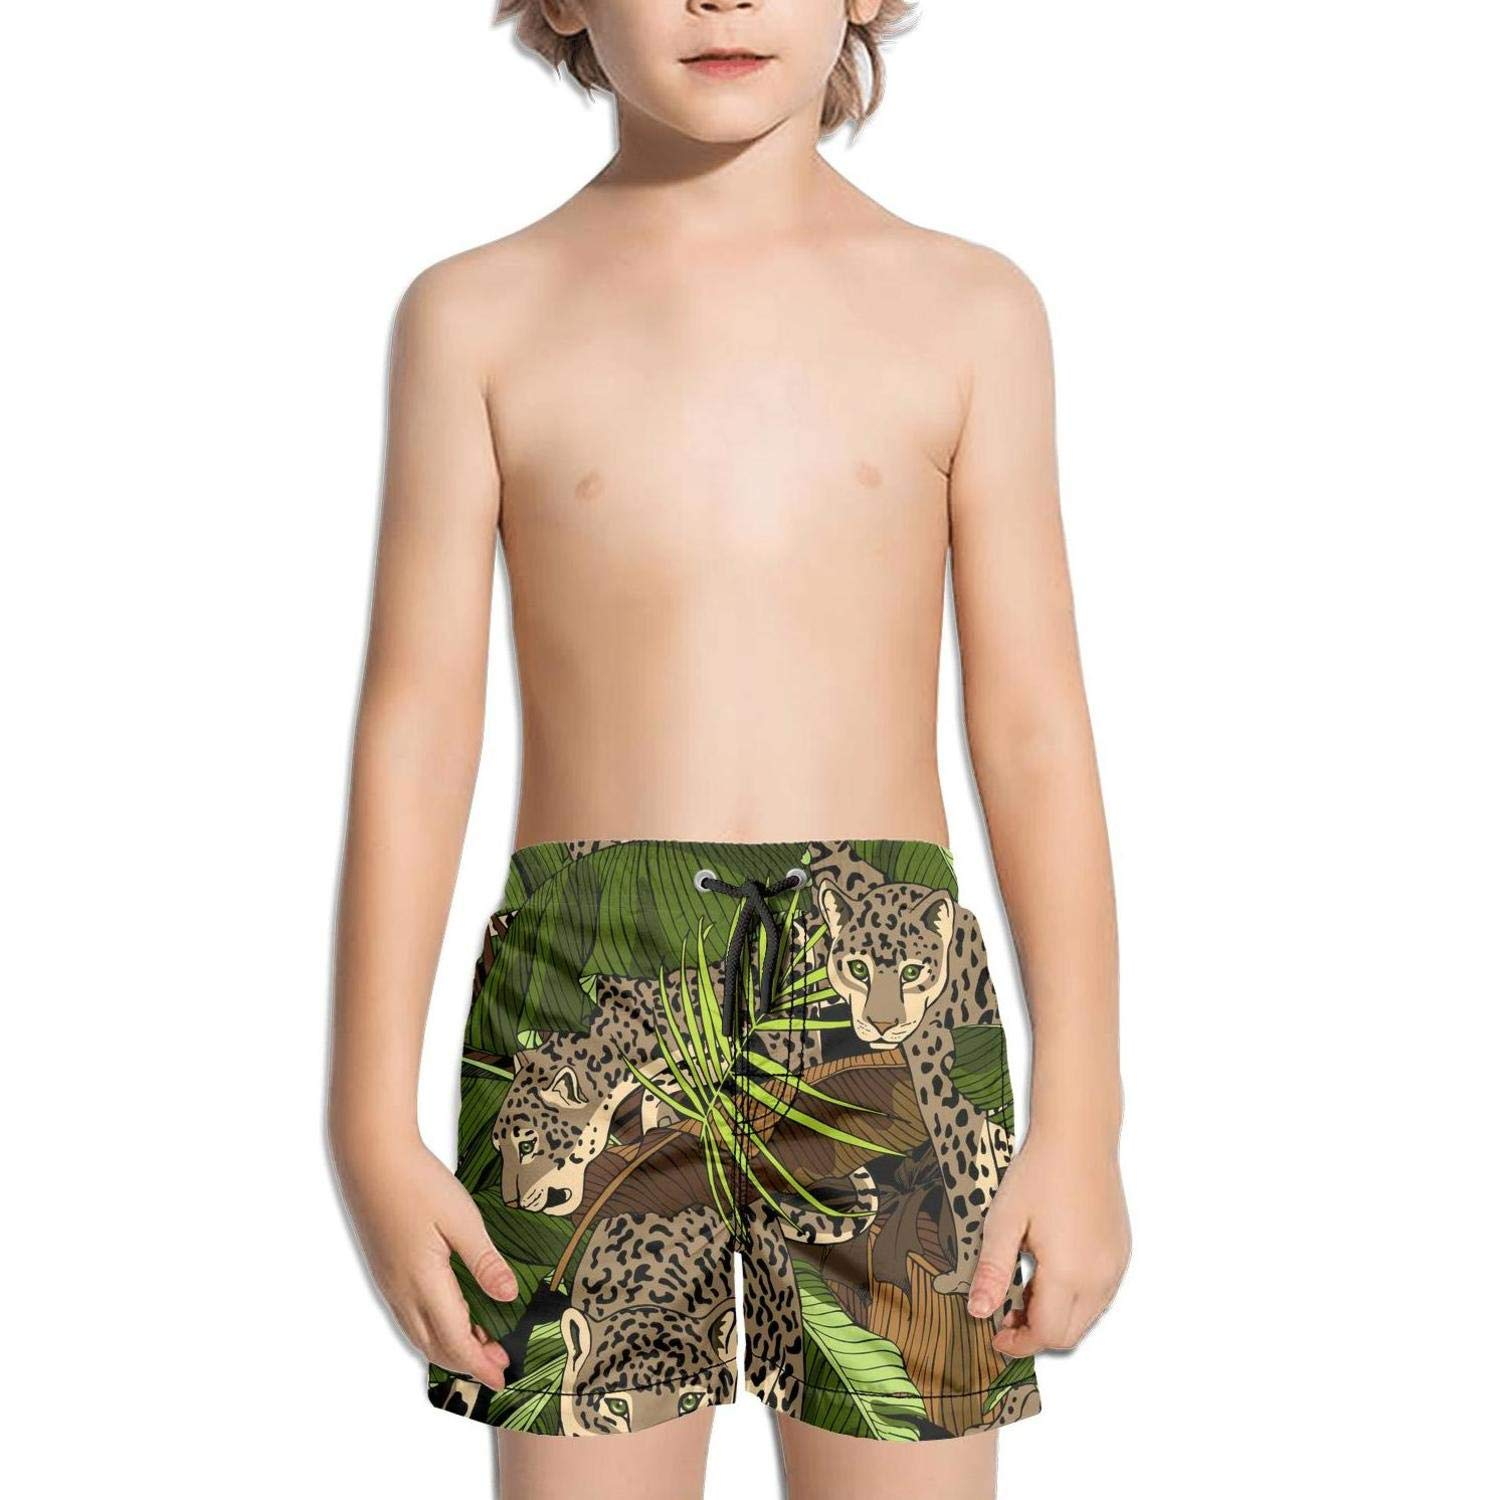 jhnkmmnc Fabric Leopard Fabric Camouflage Tropical Printed Solid Board Swim Shorts